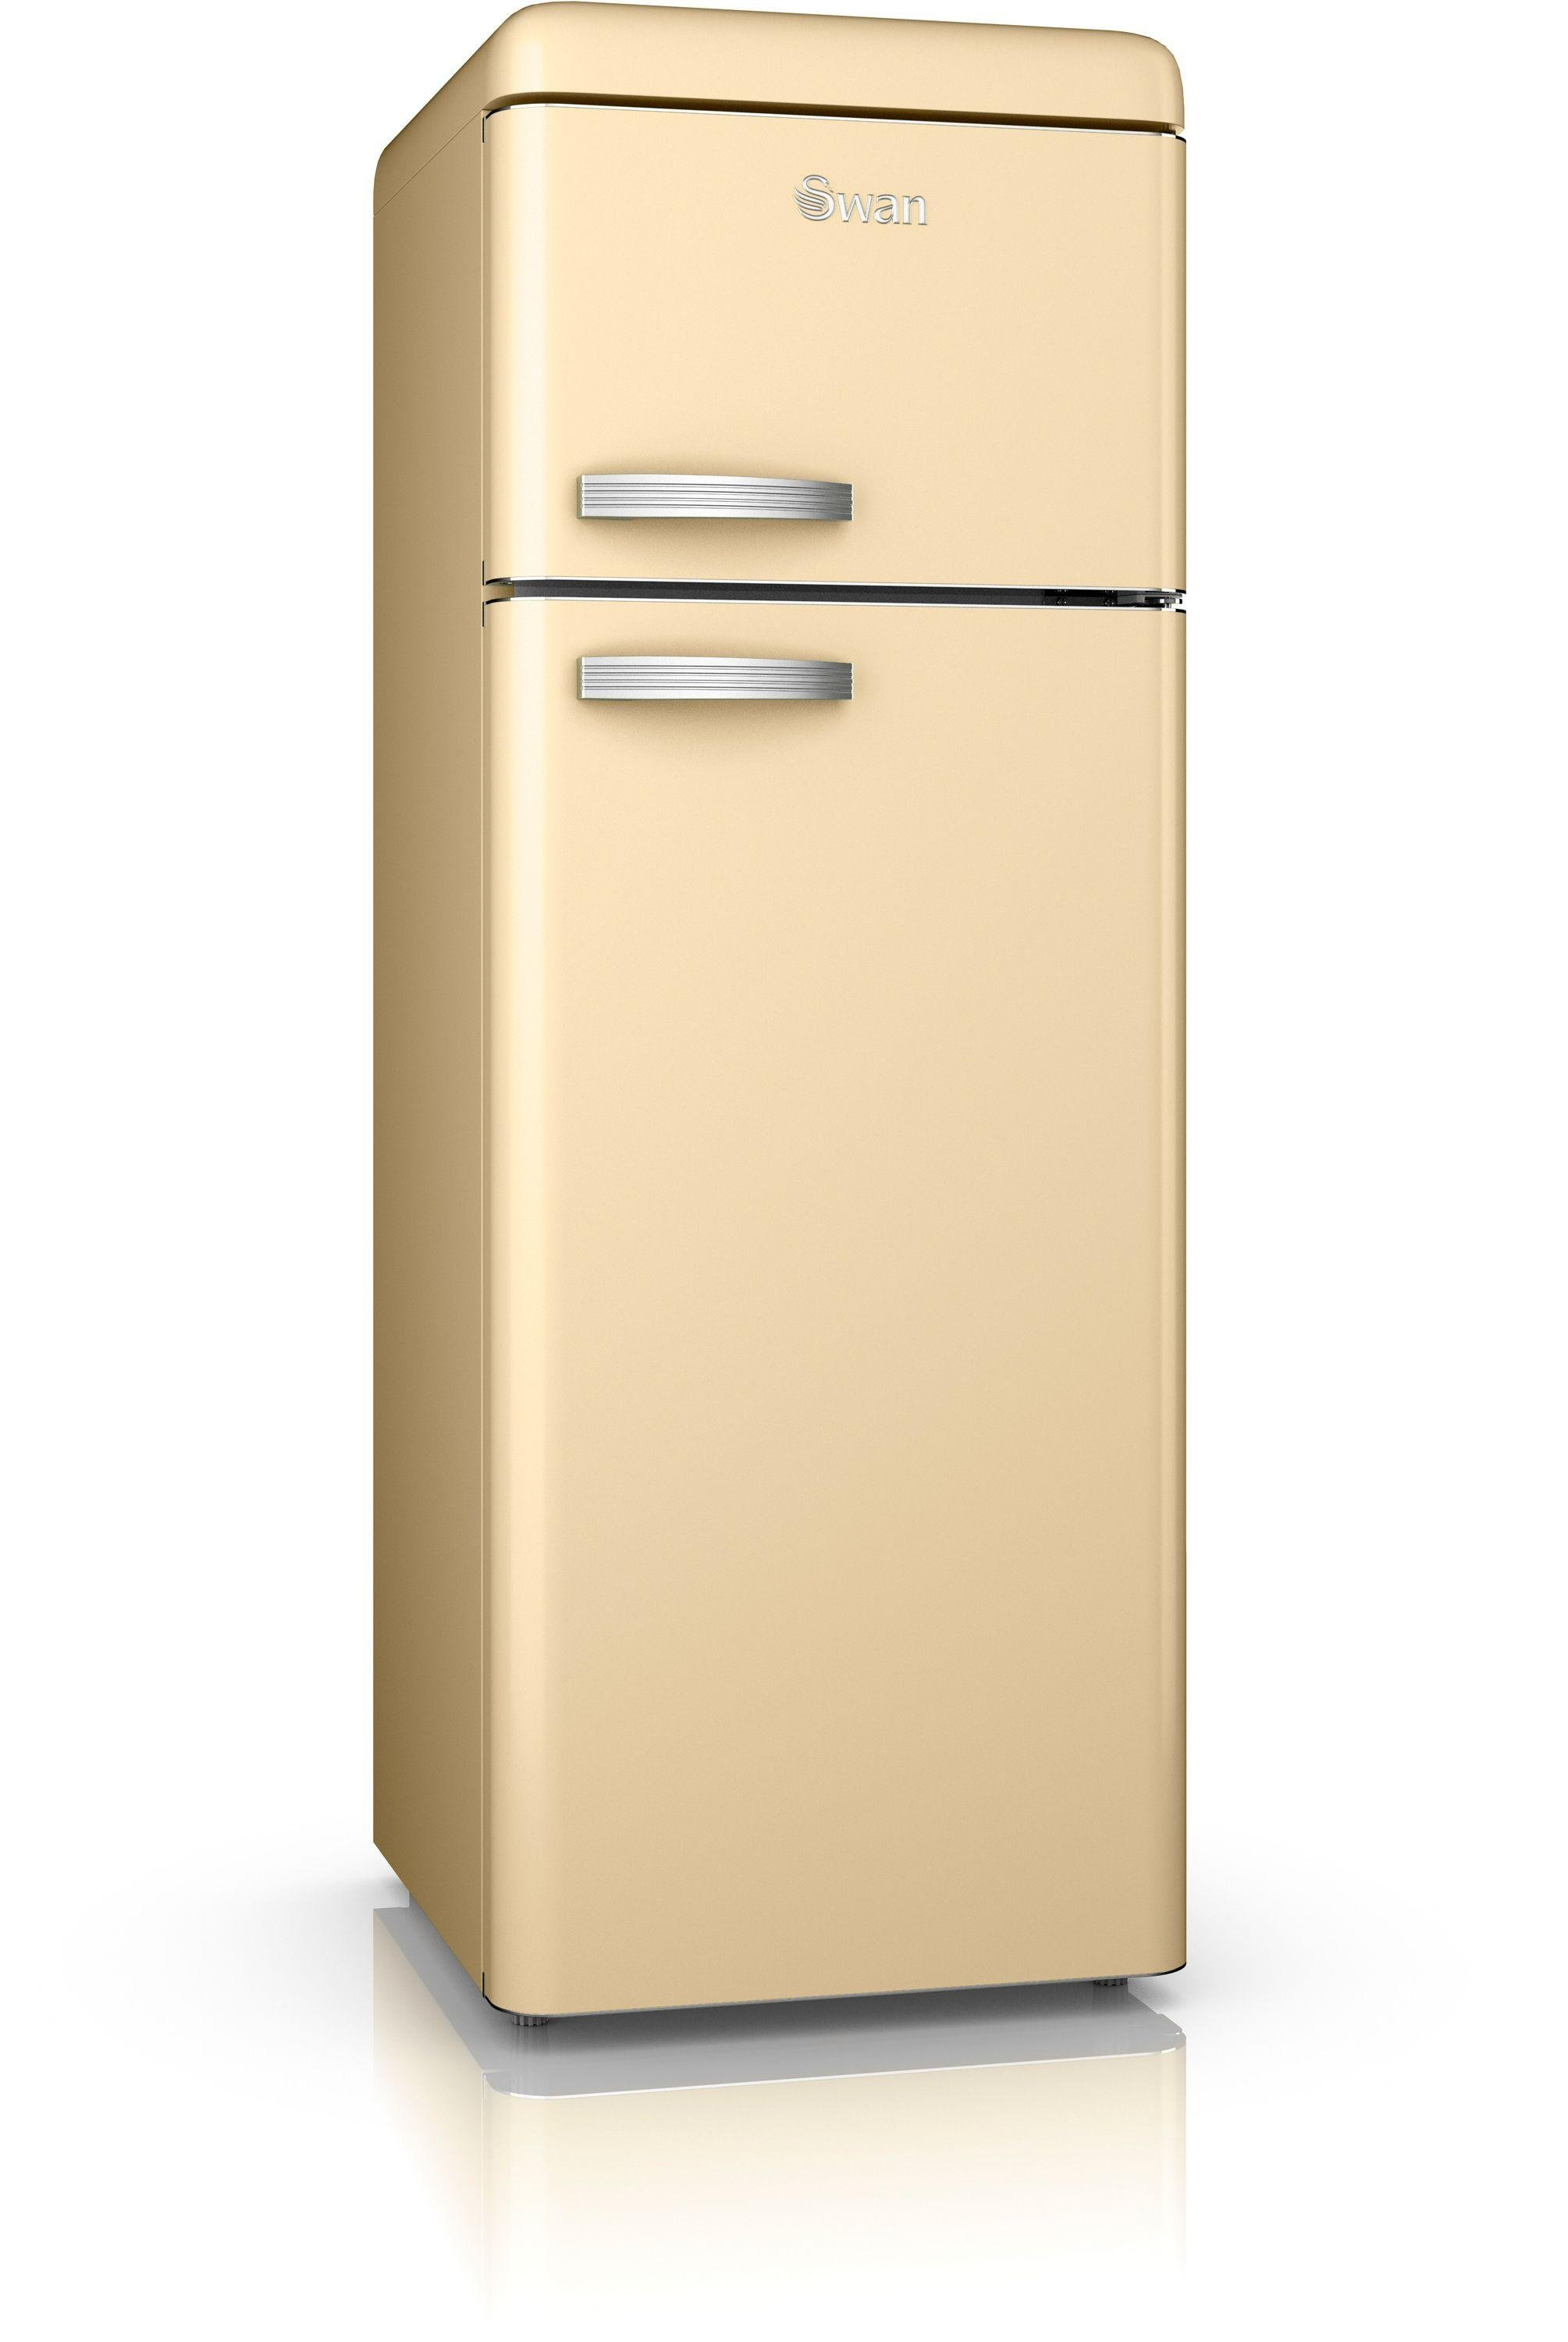 Swan SR11010CN Retro Tall Fridge Freezer - Cream.